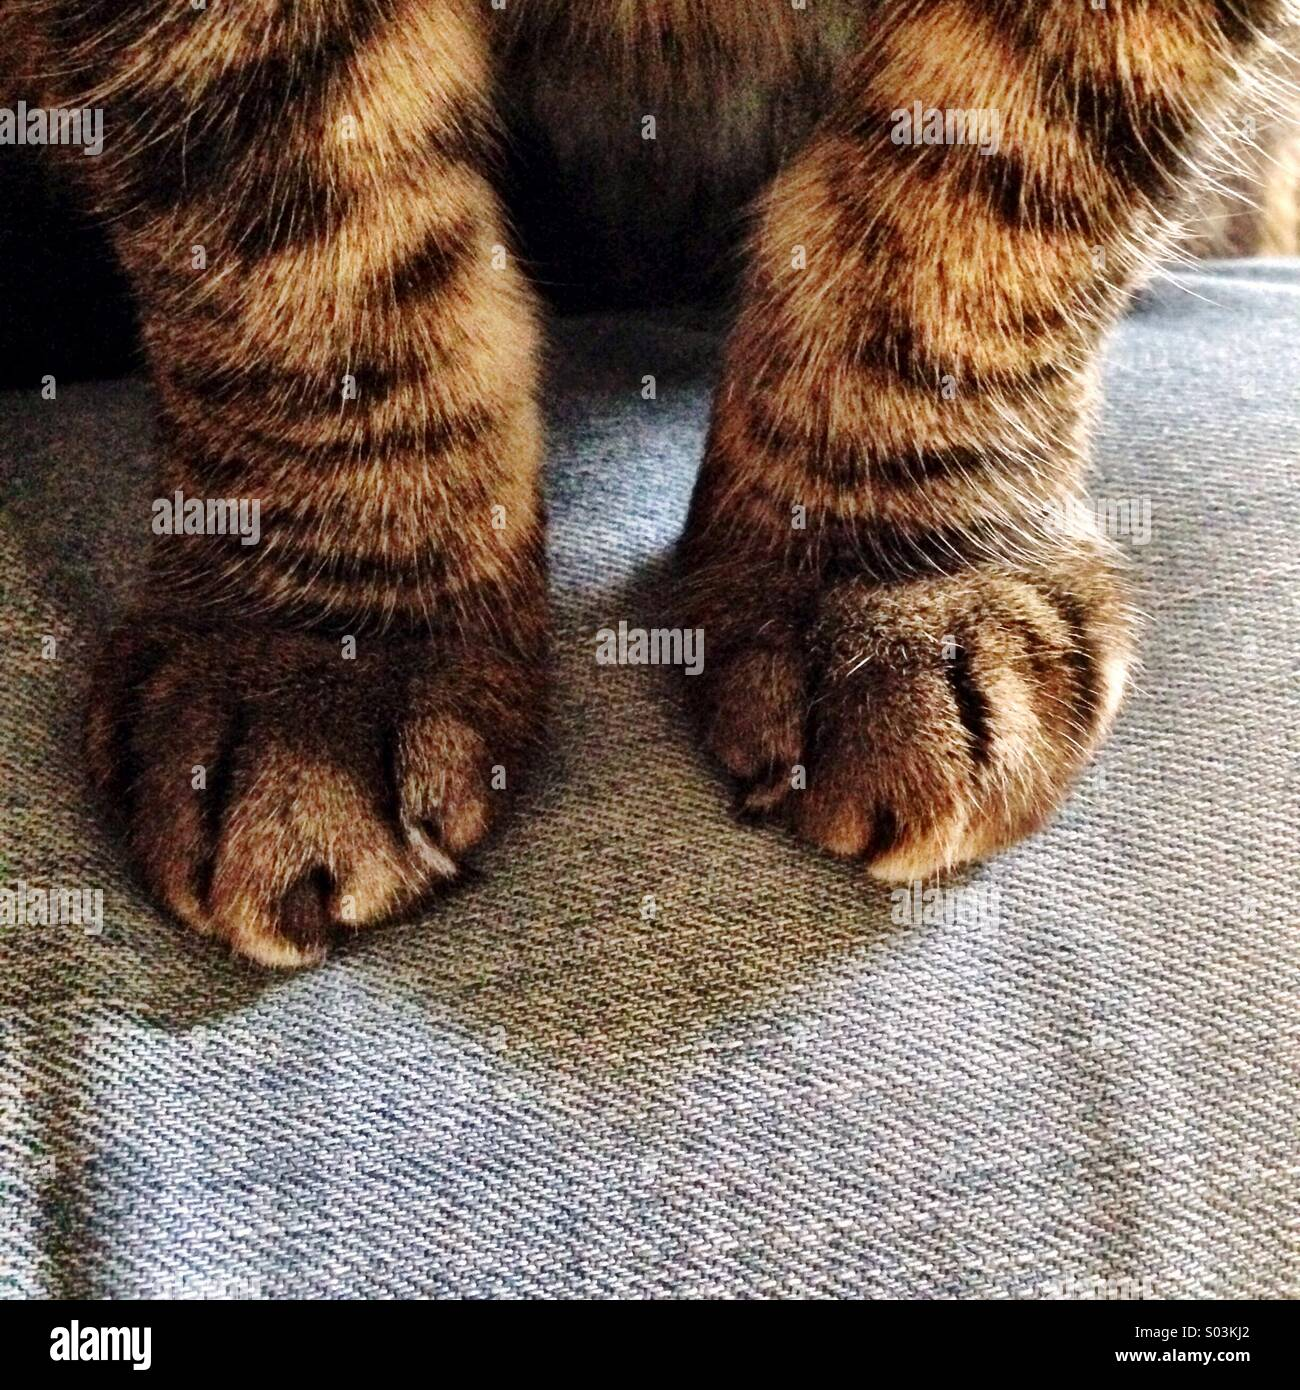 Cat paws - Stock Image